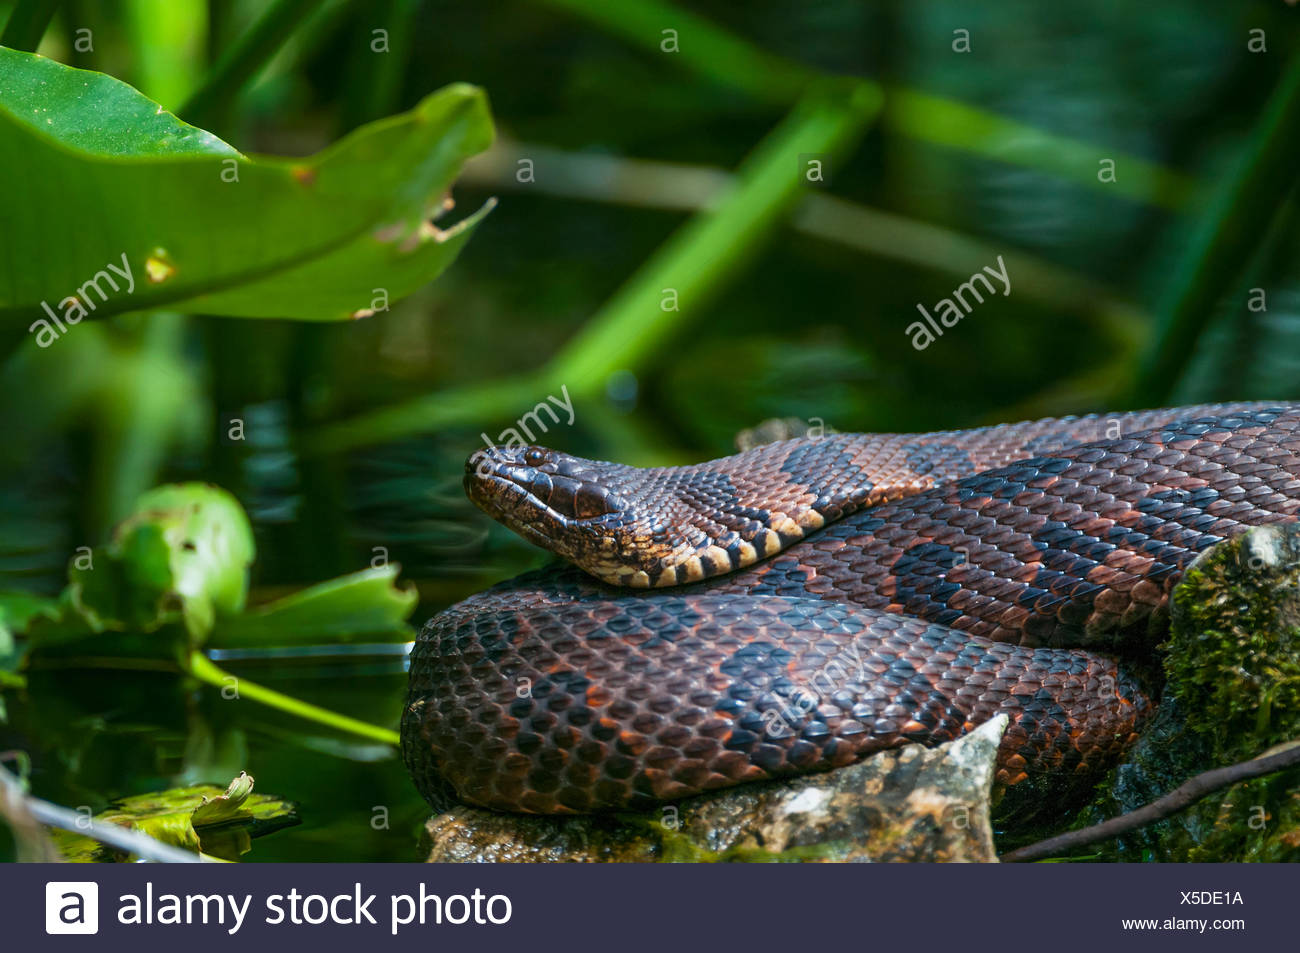 Brown water snake (Nerodia taxispilota); Silver Springs, Florida, United States of America Stock Photo